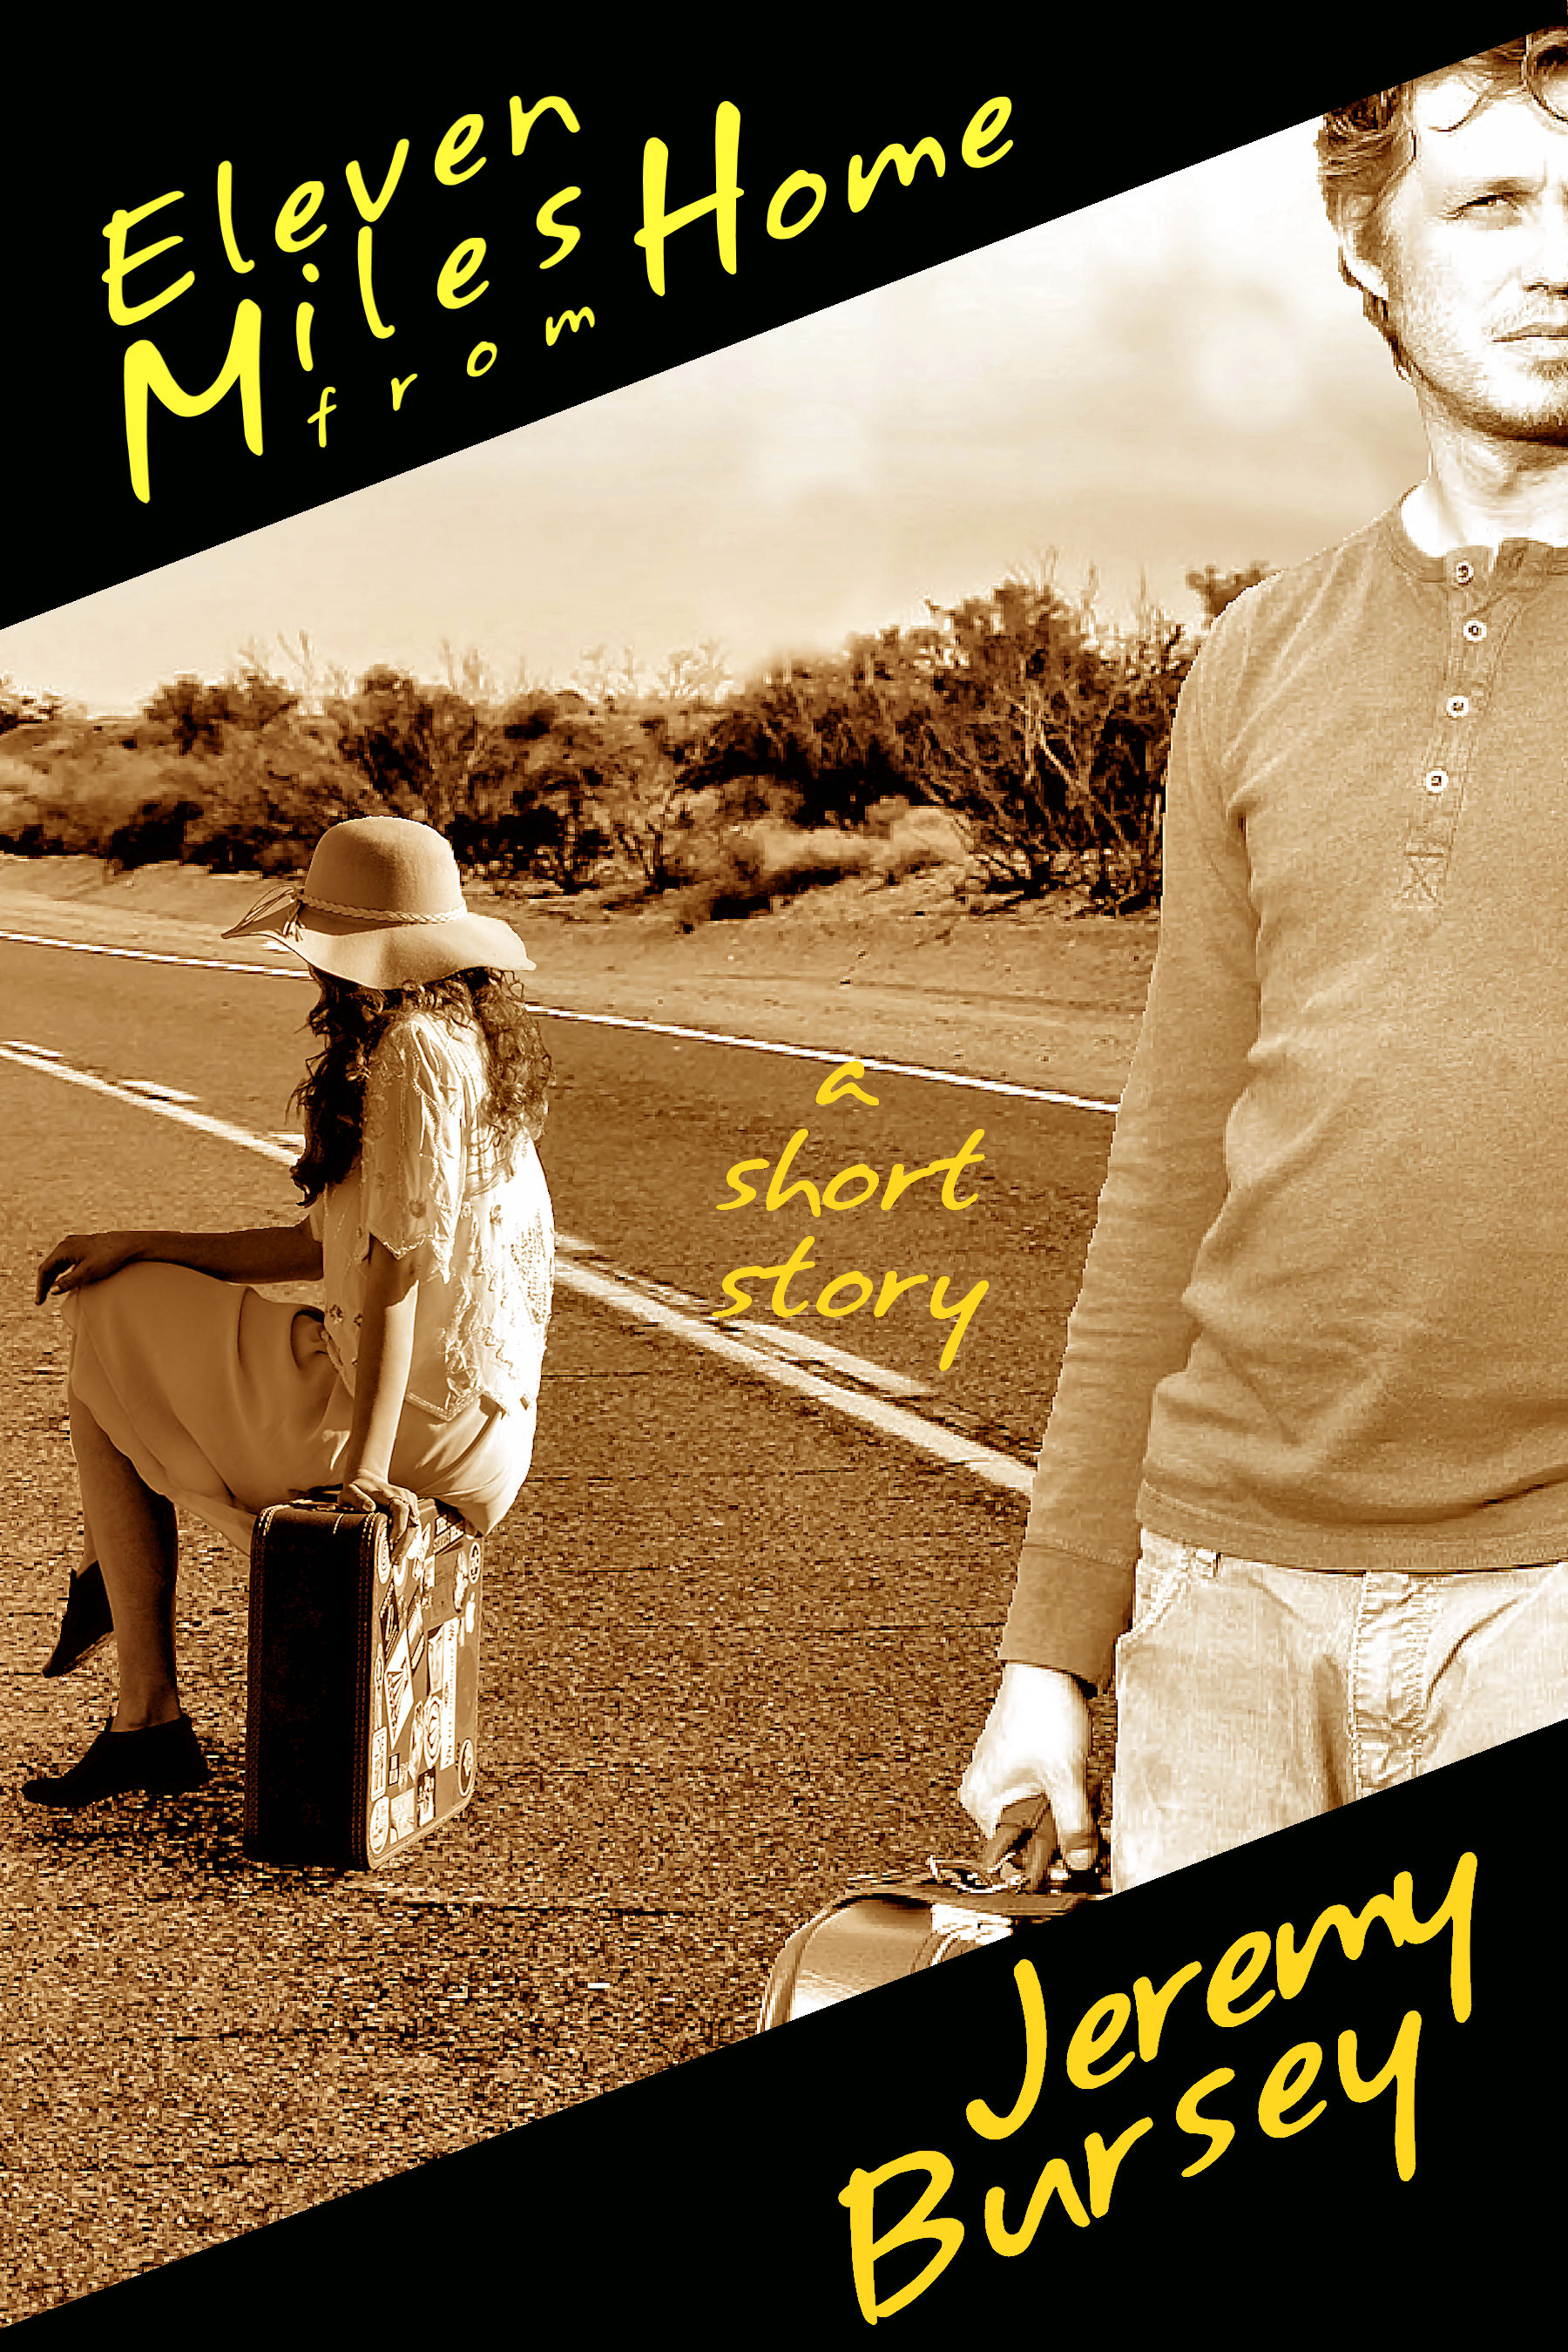 Eleven Miles from Home: a short story by Jeremy Bursey